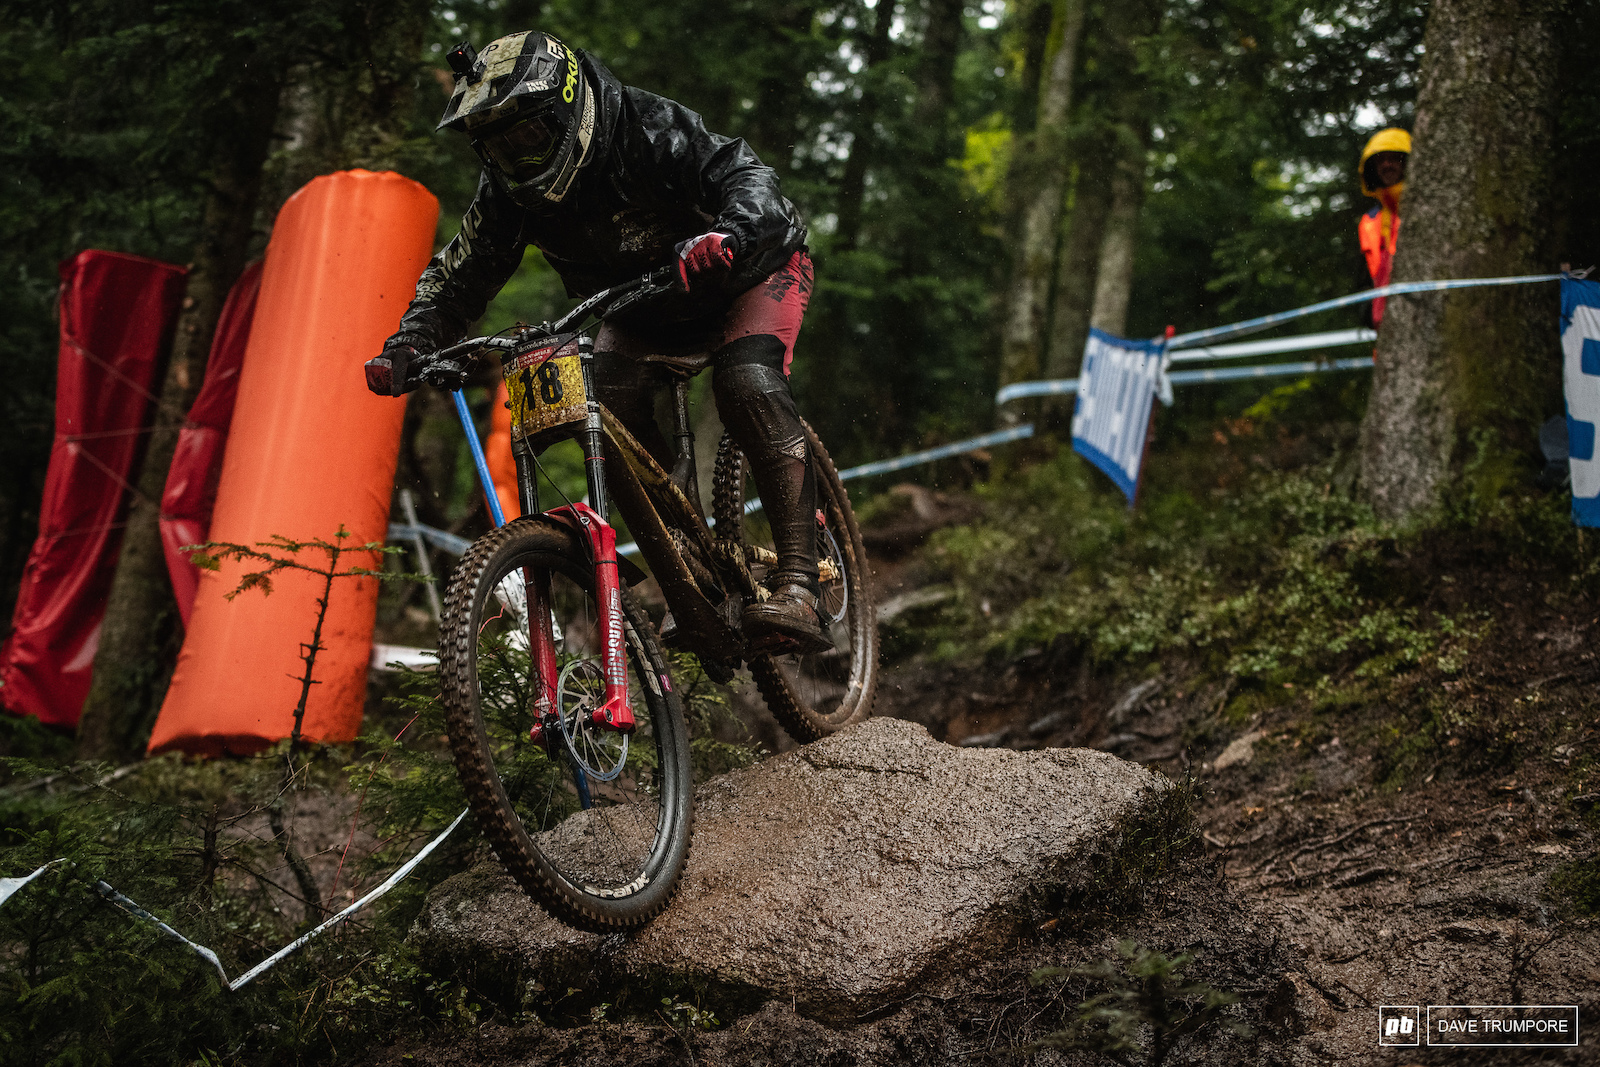 Remi Thirion lives about 30 minutes away and made the locals around by finishing on the podium in 4th.